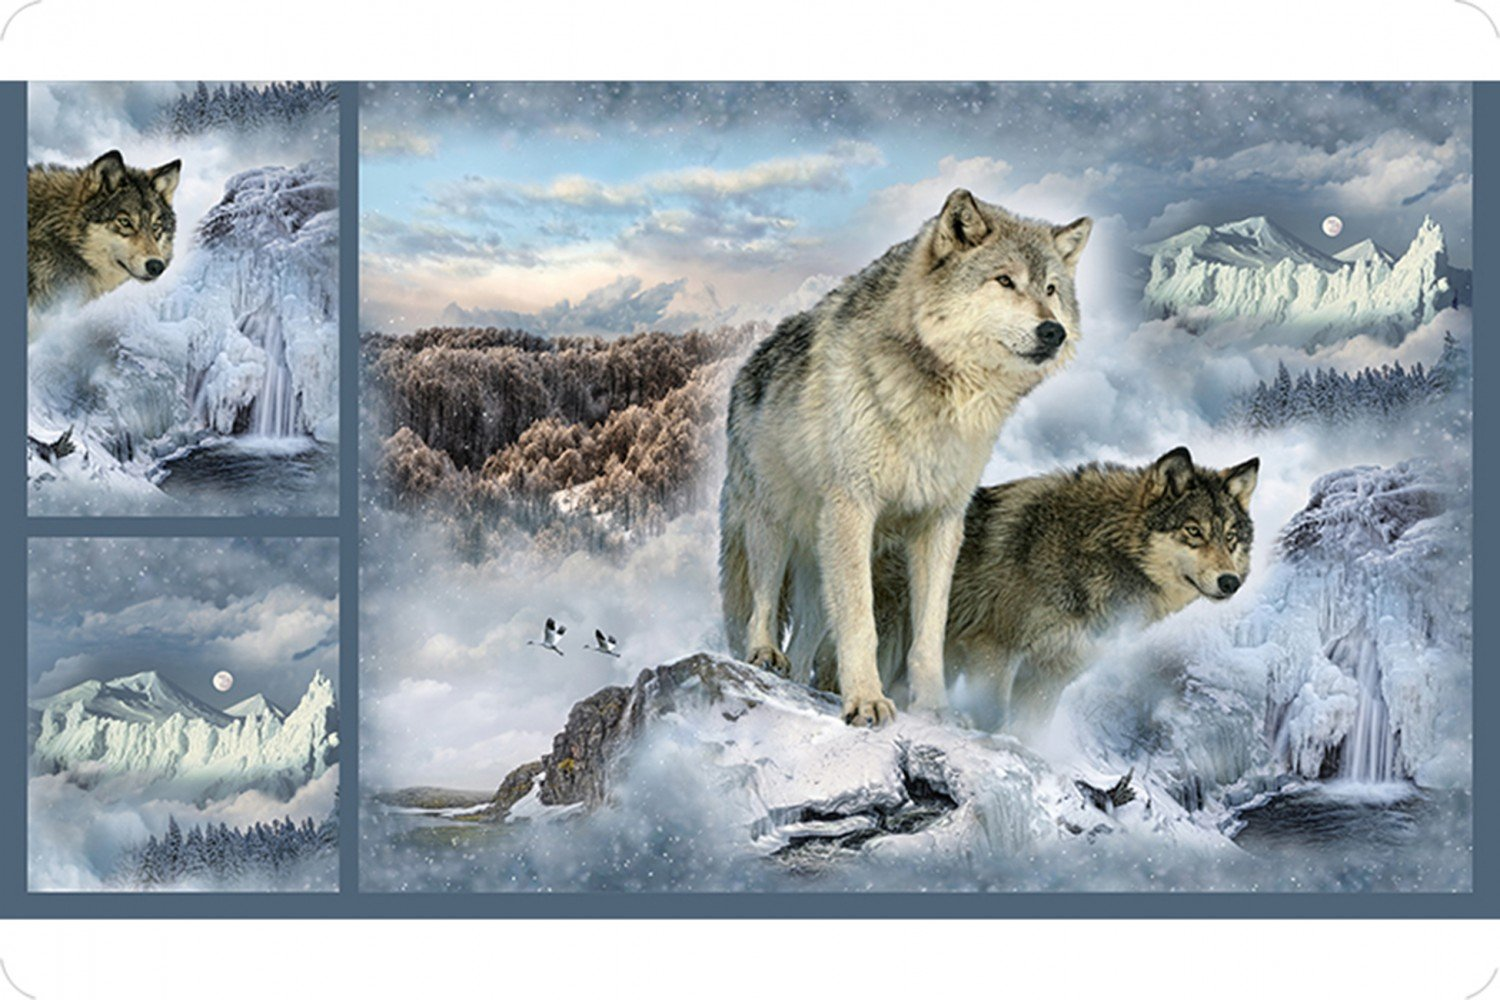 Hoffman Wolves Digital Cuddle 33inx45in Panel & 13inx17in Small Panels